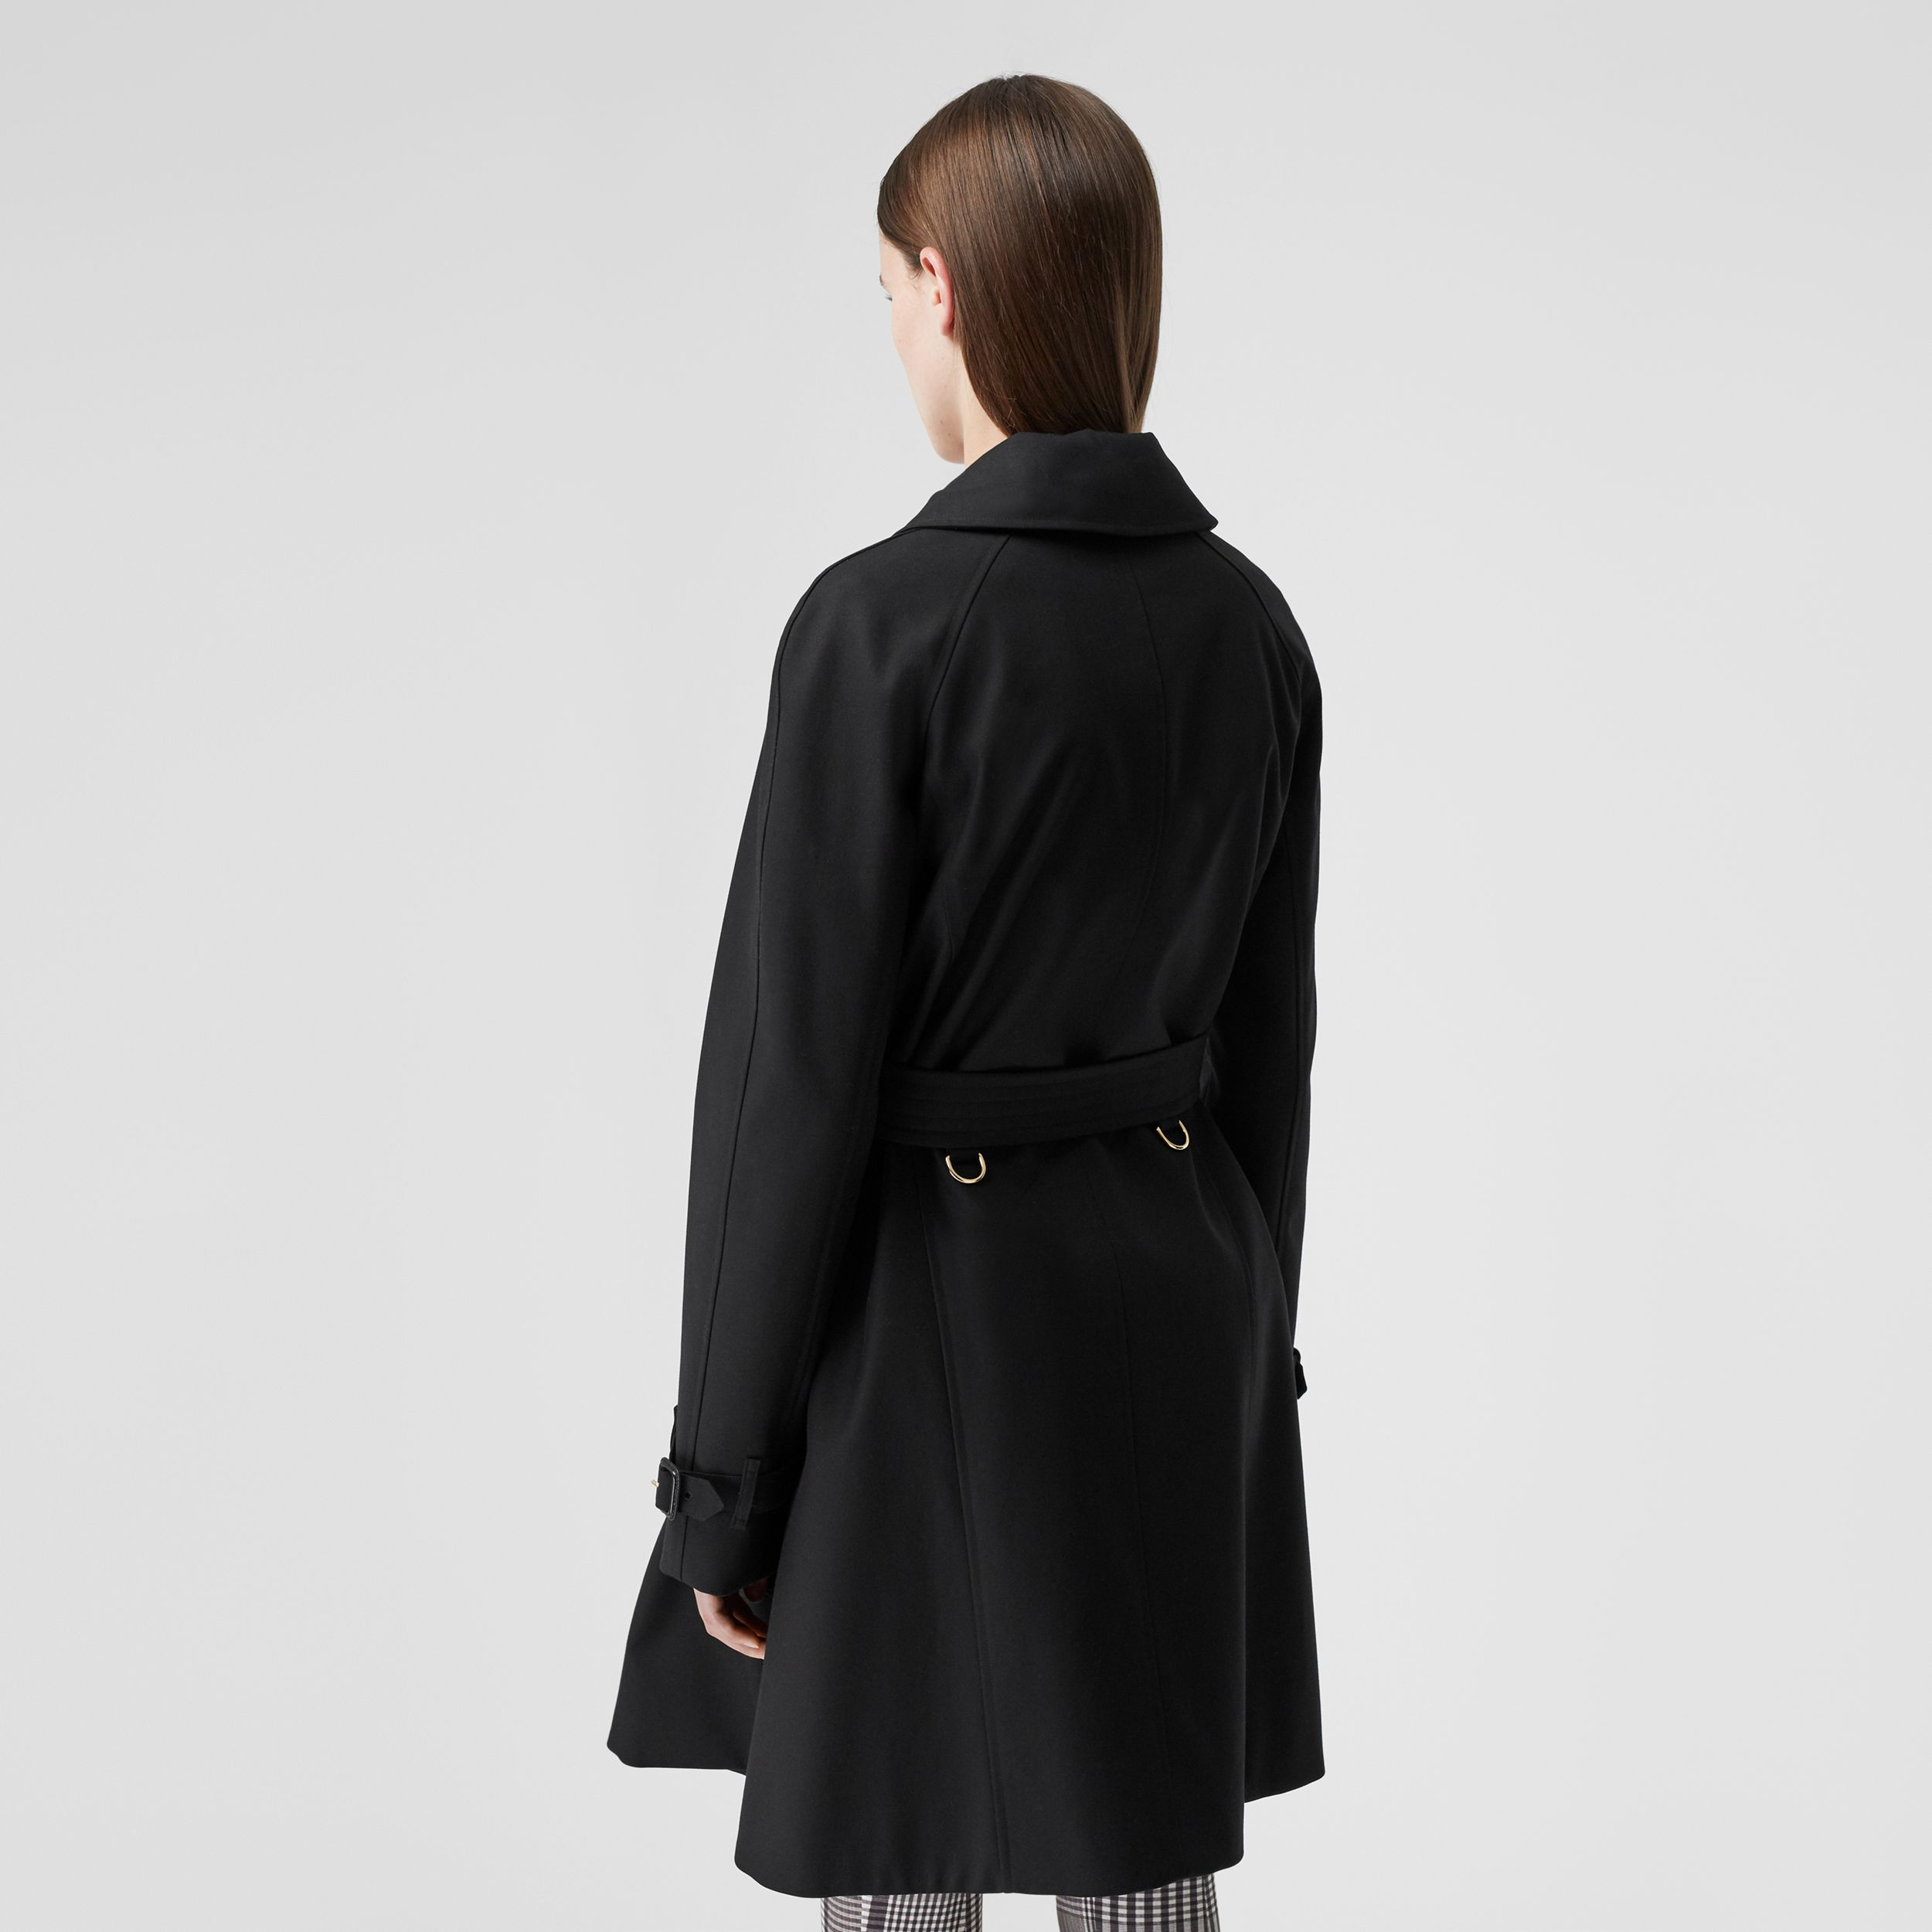 Cotton Gabardine Belted Swing Coat in Black - Women | Burberry United States - 3